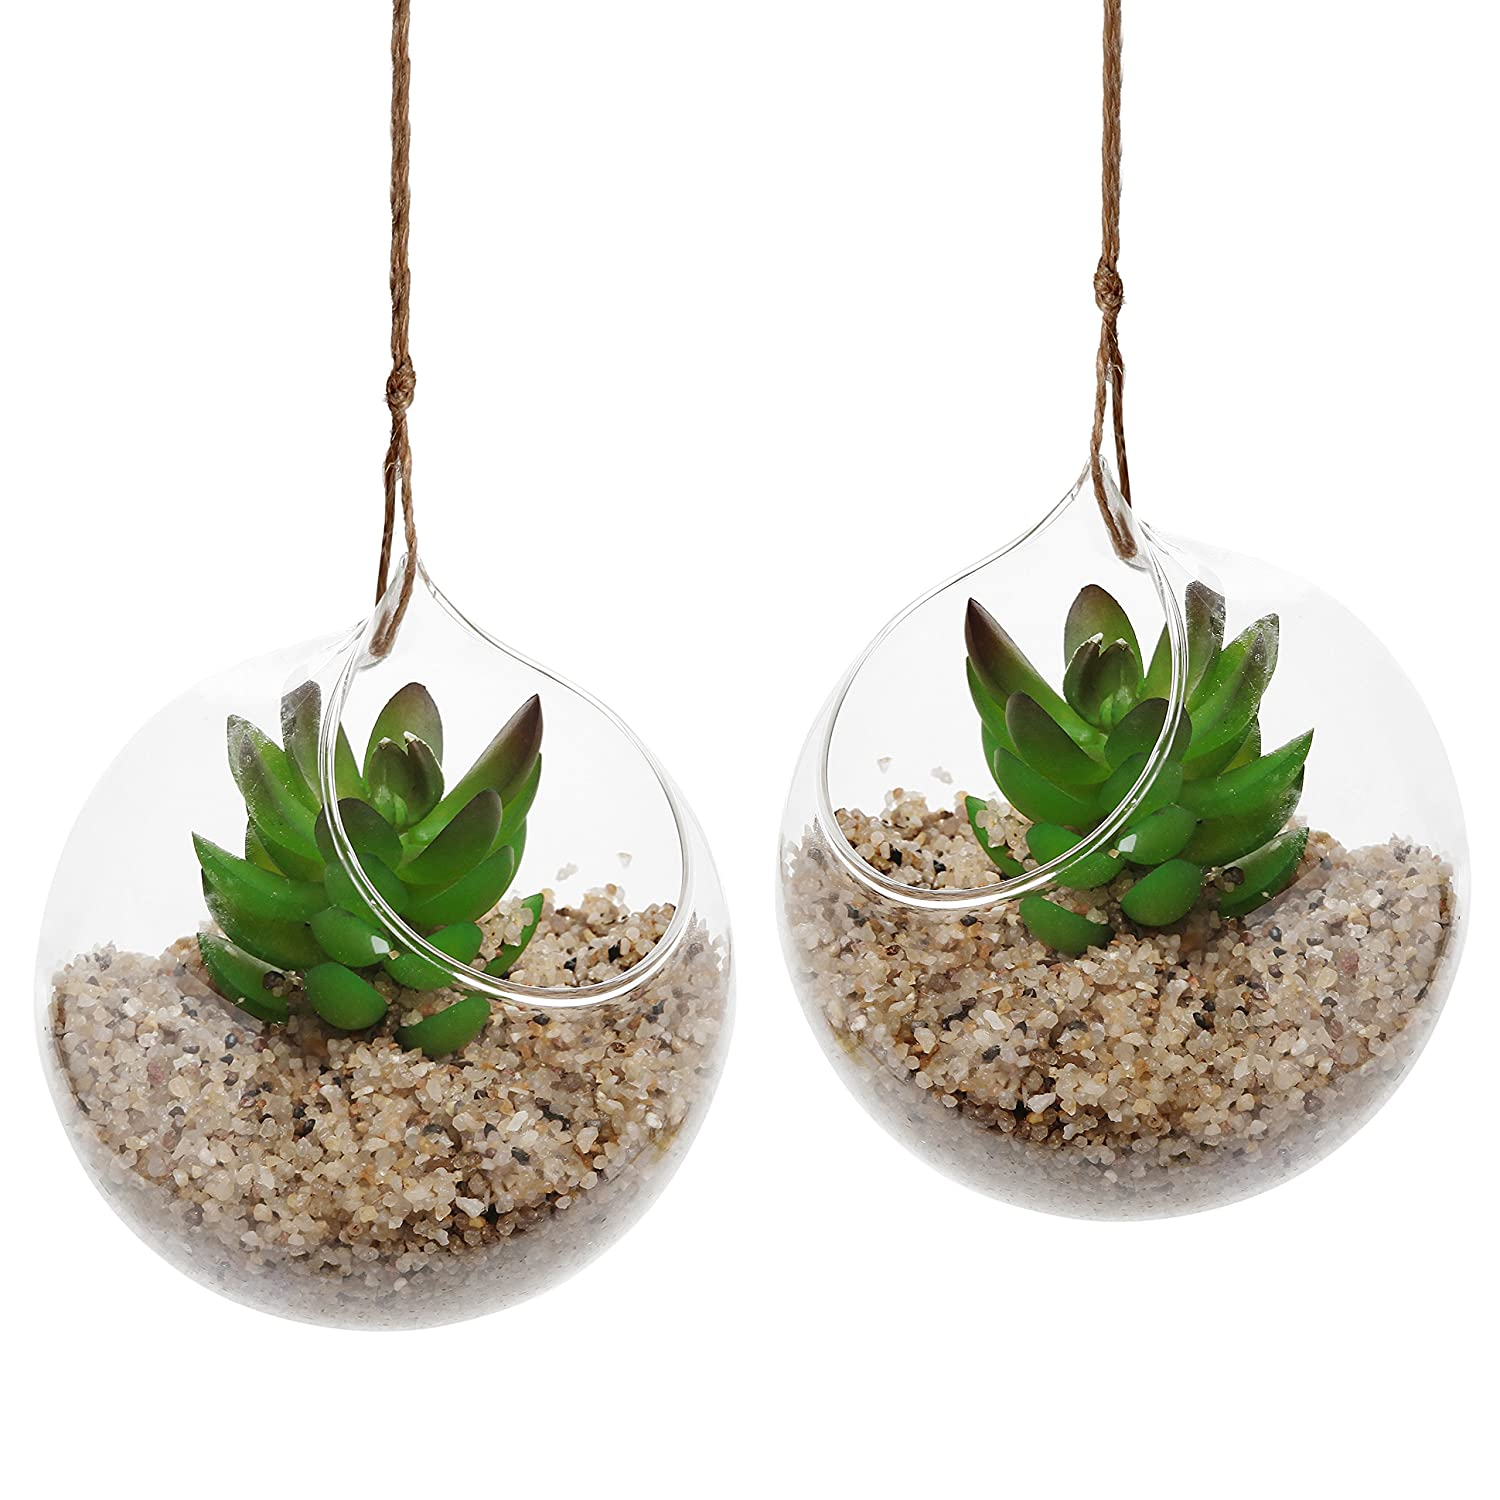 Amazon.com: Set of 2 Decorative Clear Glass Globe / Hanging Air Plant  Terrarium Planter / Candle Holder - MyGift: Home & Kitchen - Amazon.com: Set Of 2 Decorative Clear Glass Globe / Hanging Air